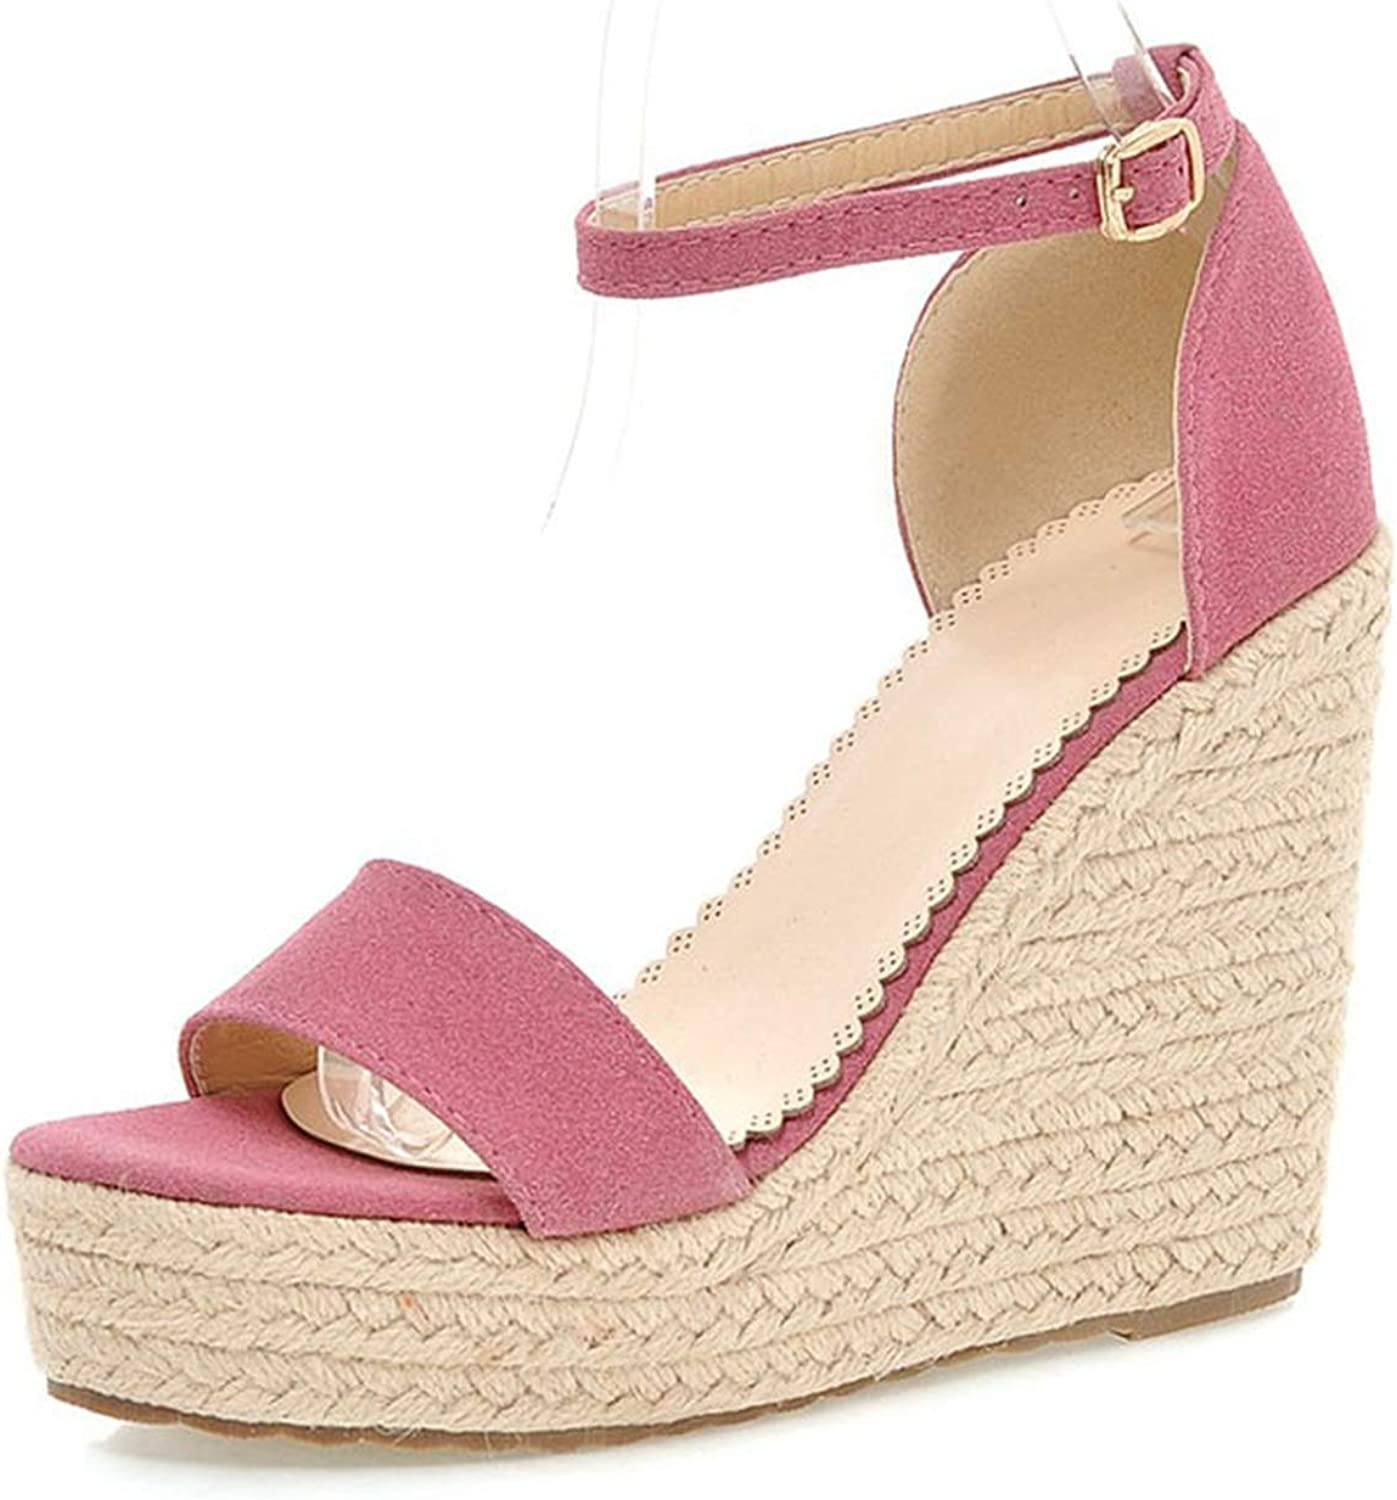 Flock Cover Heel Sandals Summer Platform Wedges High Heels Concise Solid Buckle Ankle-Wrap Sandals Women shoes